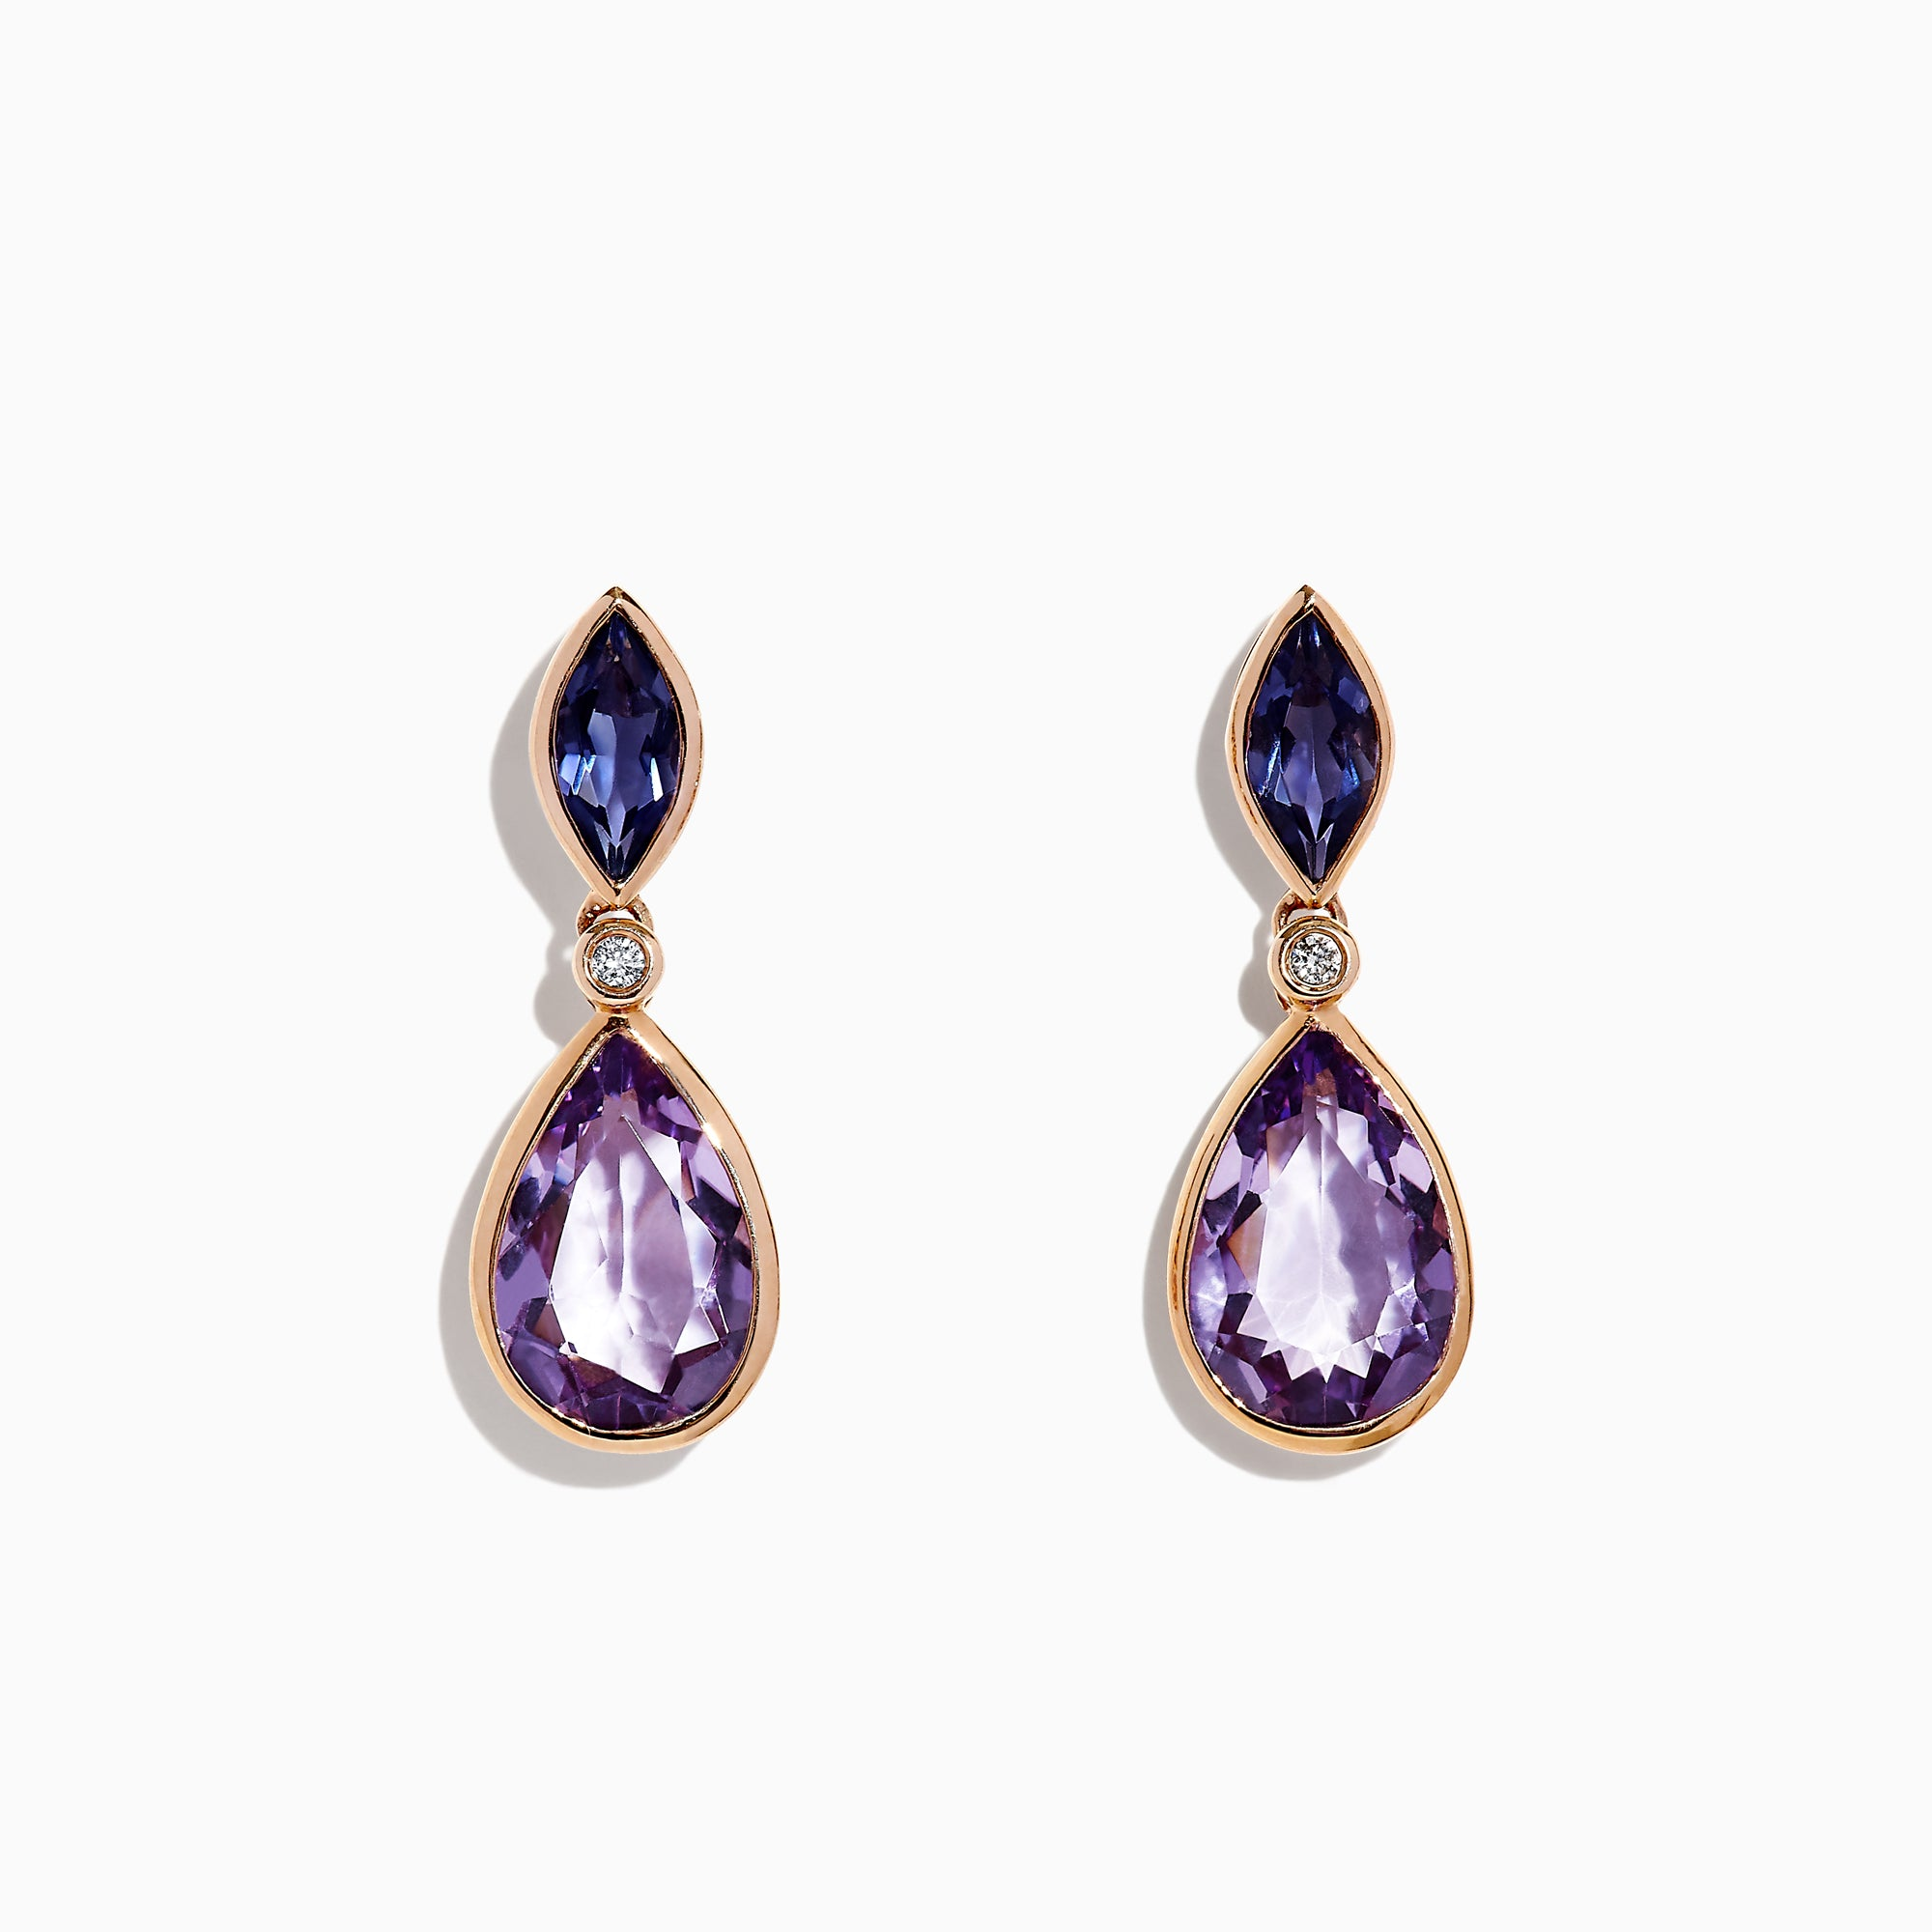 Effy 14K Rose Gold Amethyst, Iolite and Diamond Earrings, 6.09 TCW